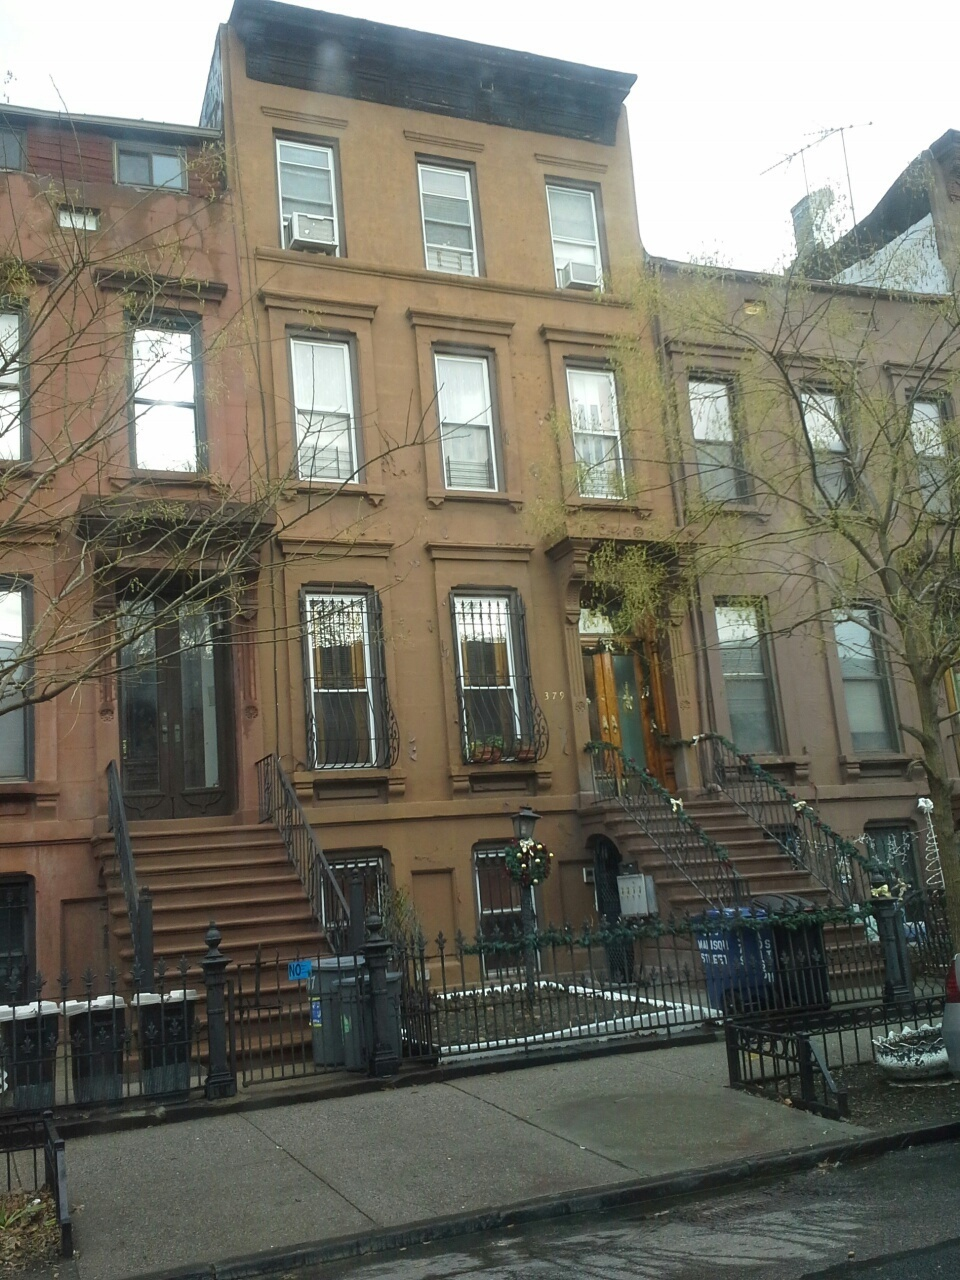 brownstones in bedford stuyvesant brooklyn, looking for a real estate agent in  brooklyn